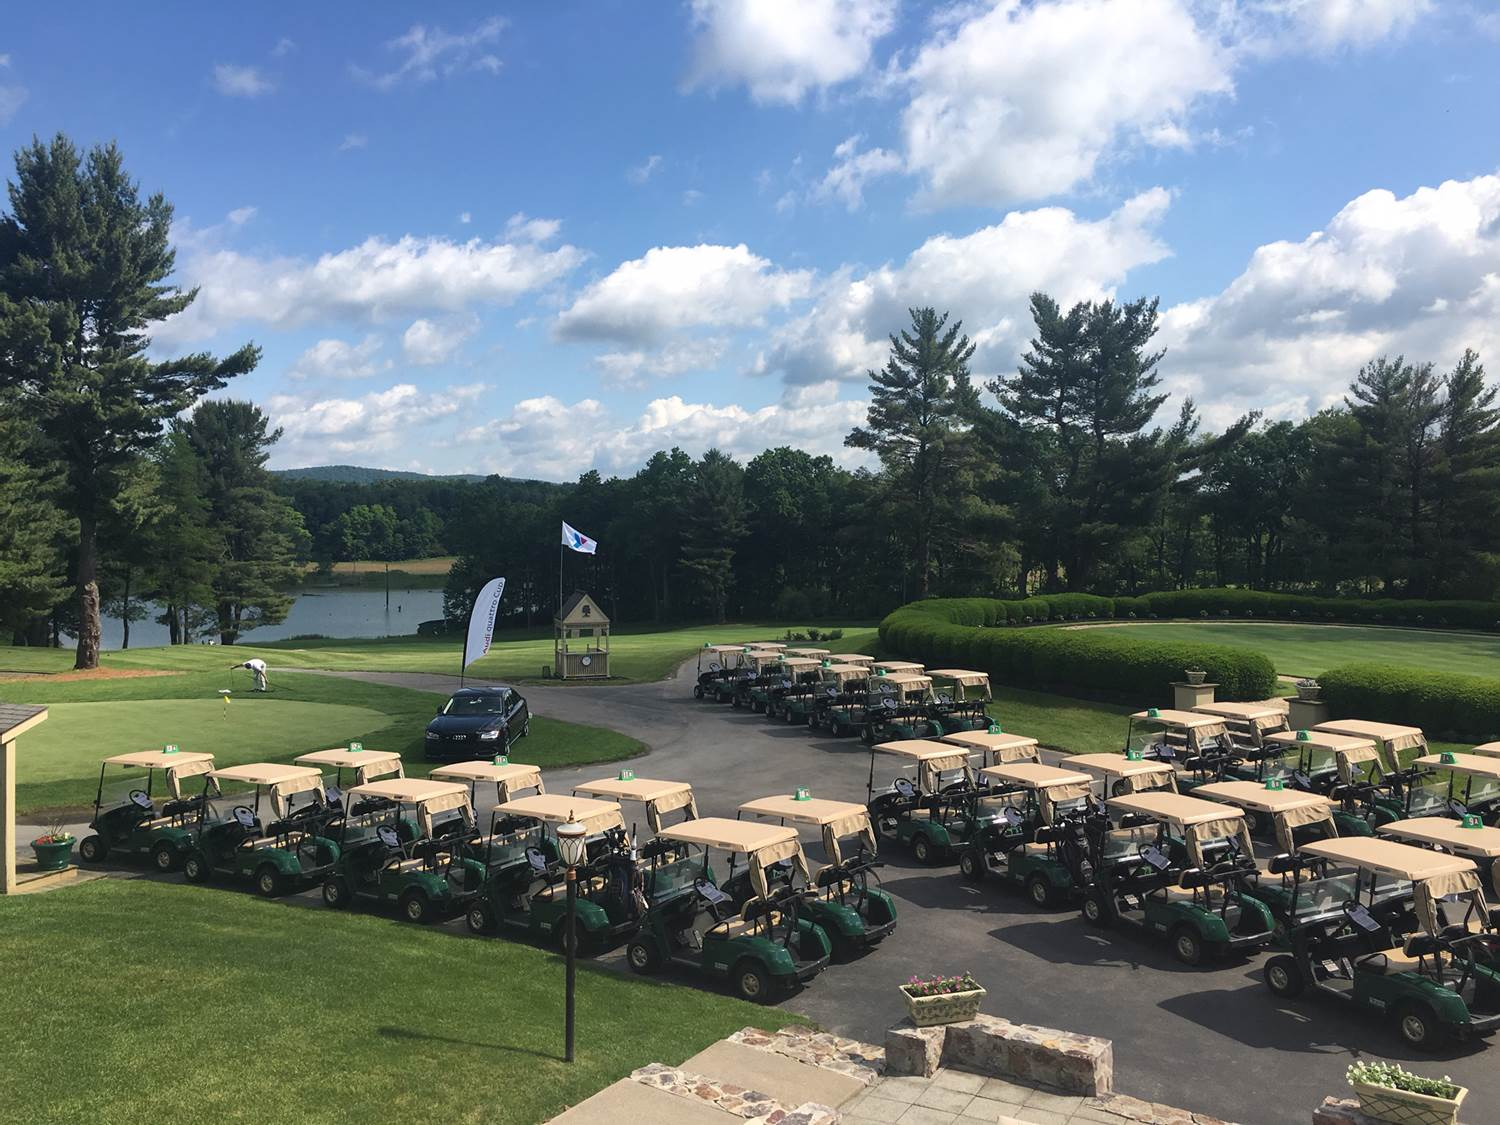 A fleet of golf carts lined up for an event at Toftrees